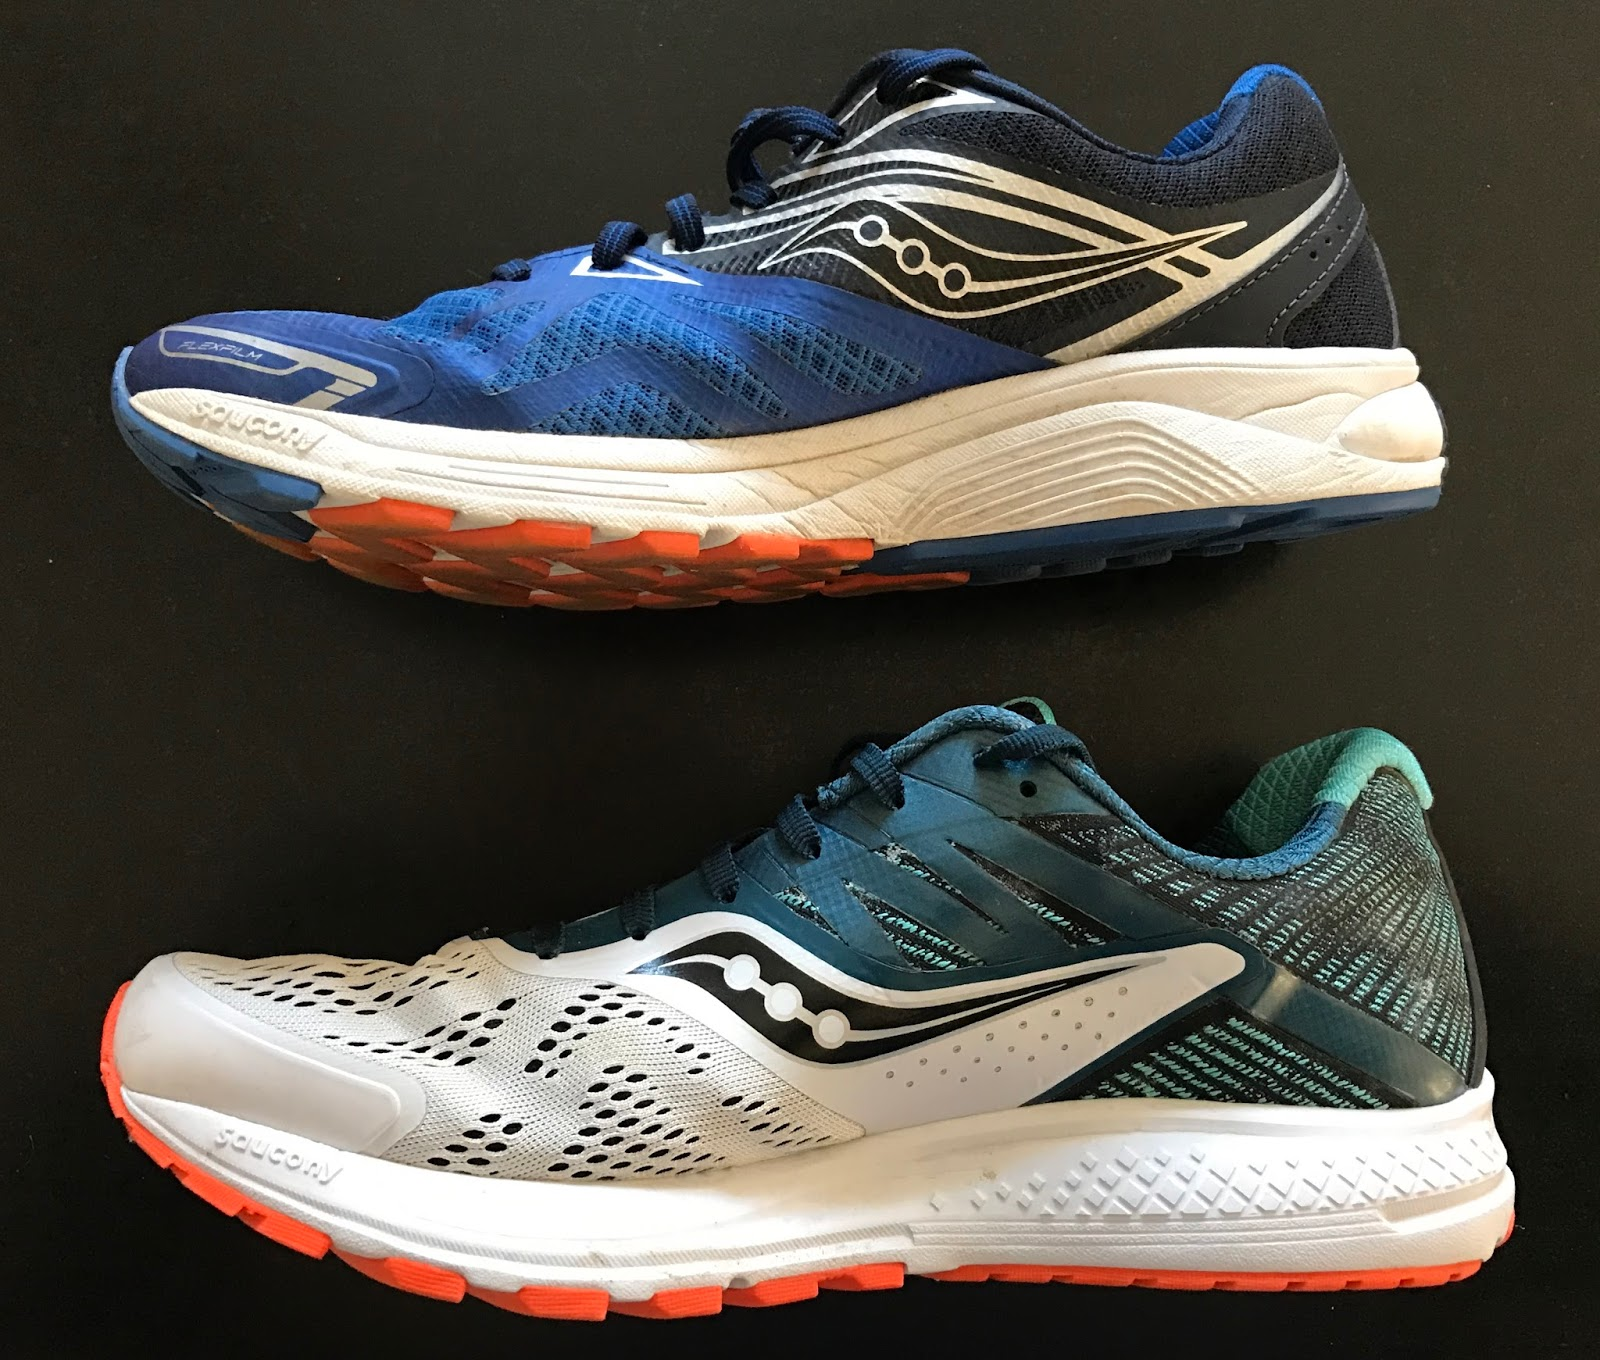 1c3f17e81b07 Road Trail Run  Saucony Ride 10 Review  What a Daily Trainer Should ...